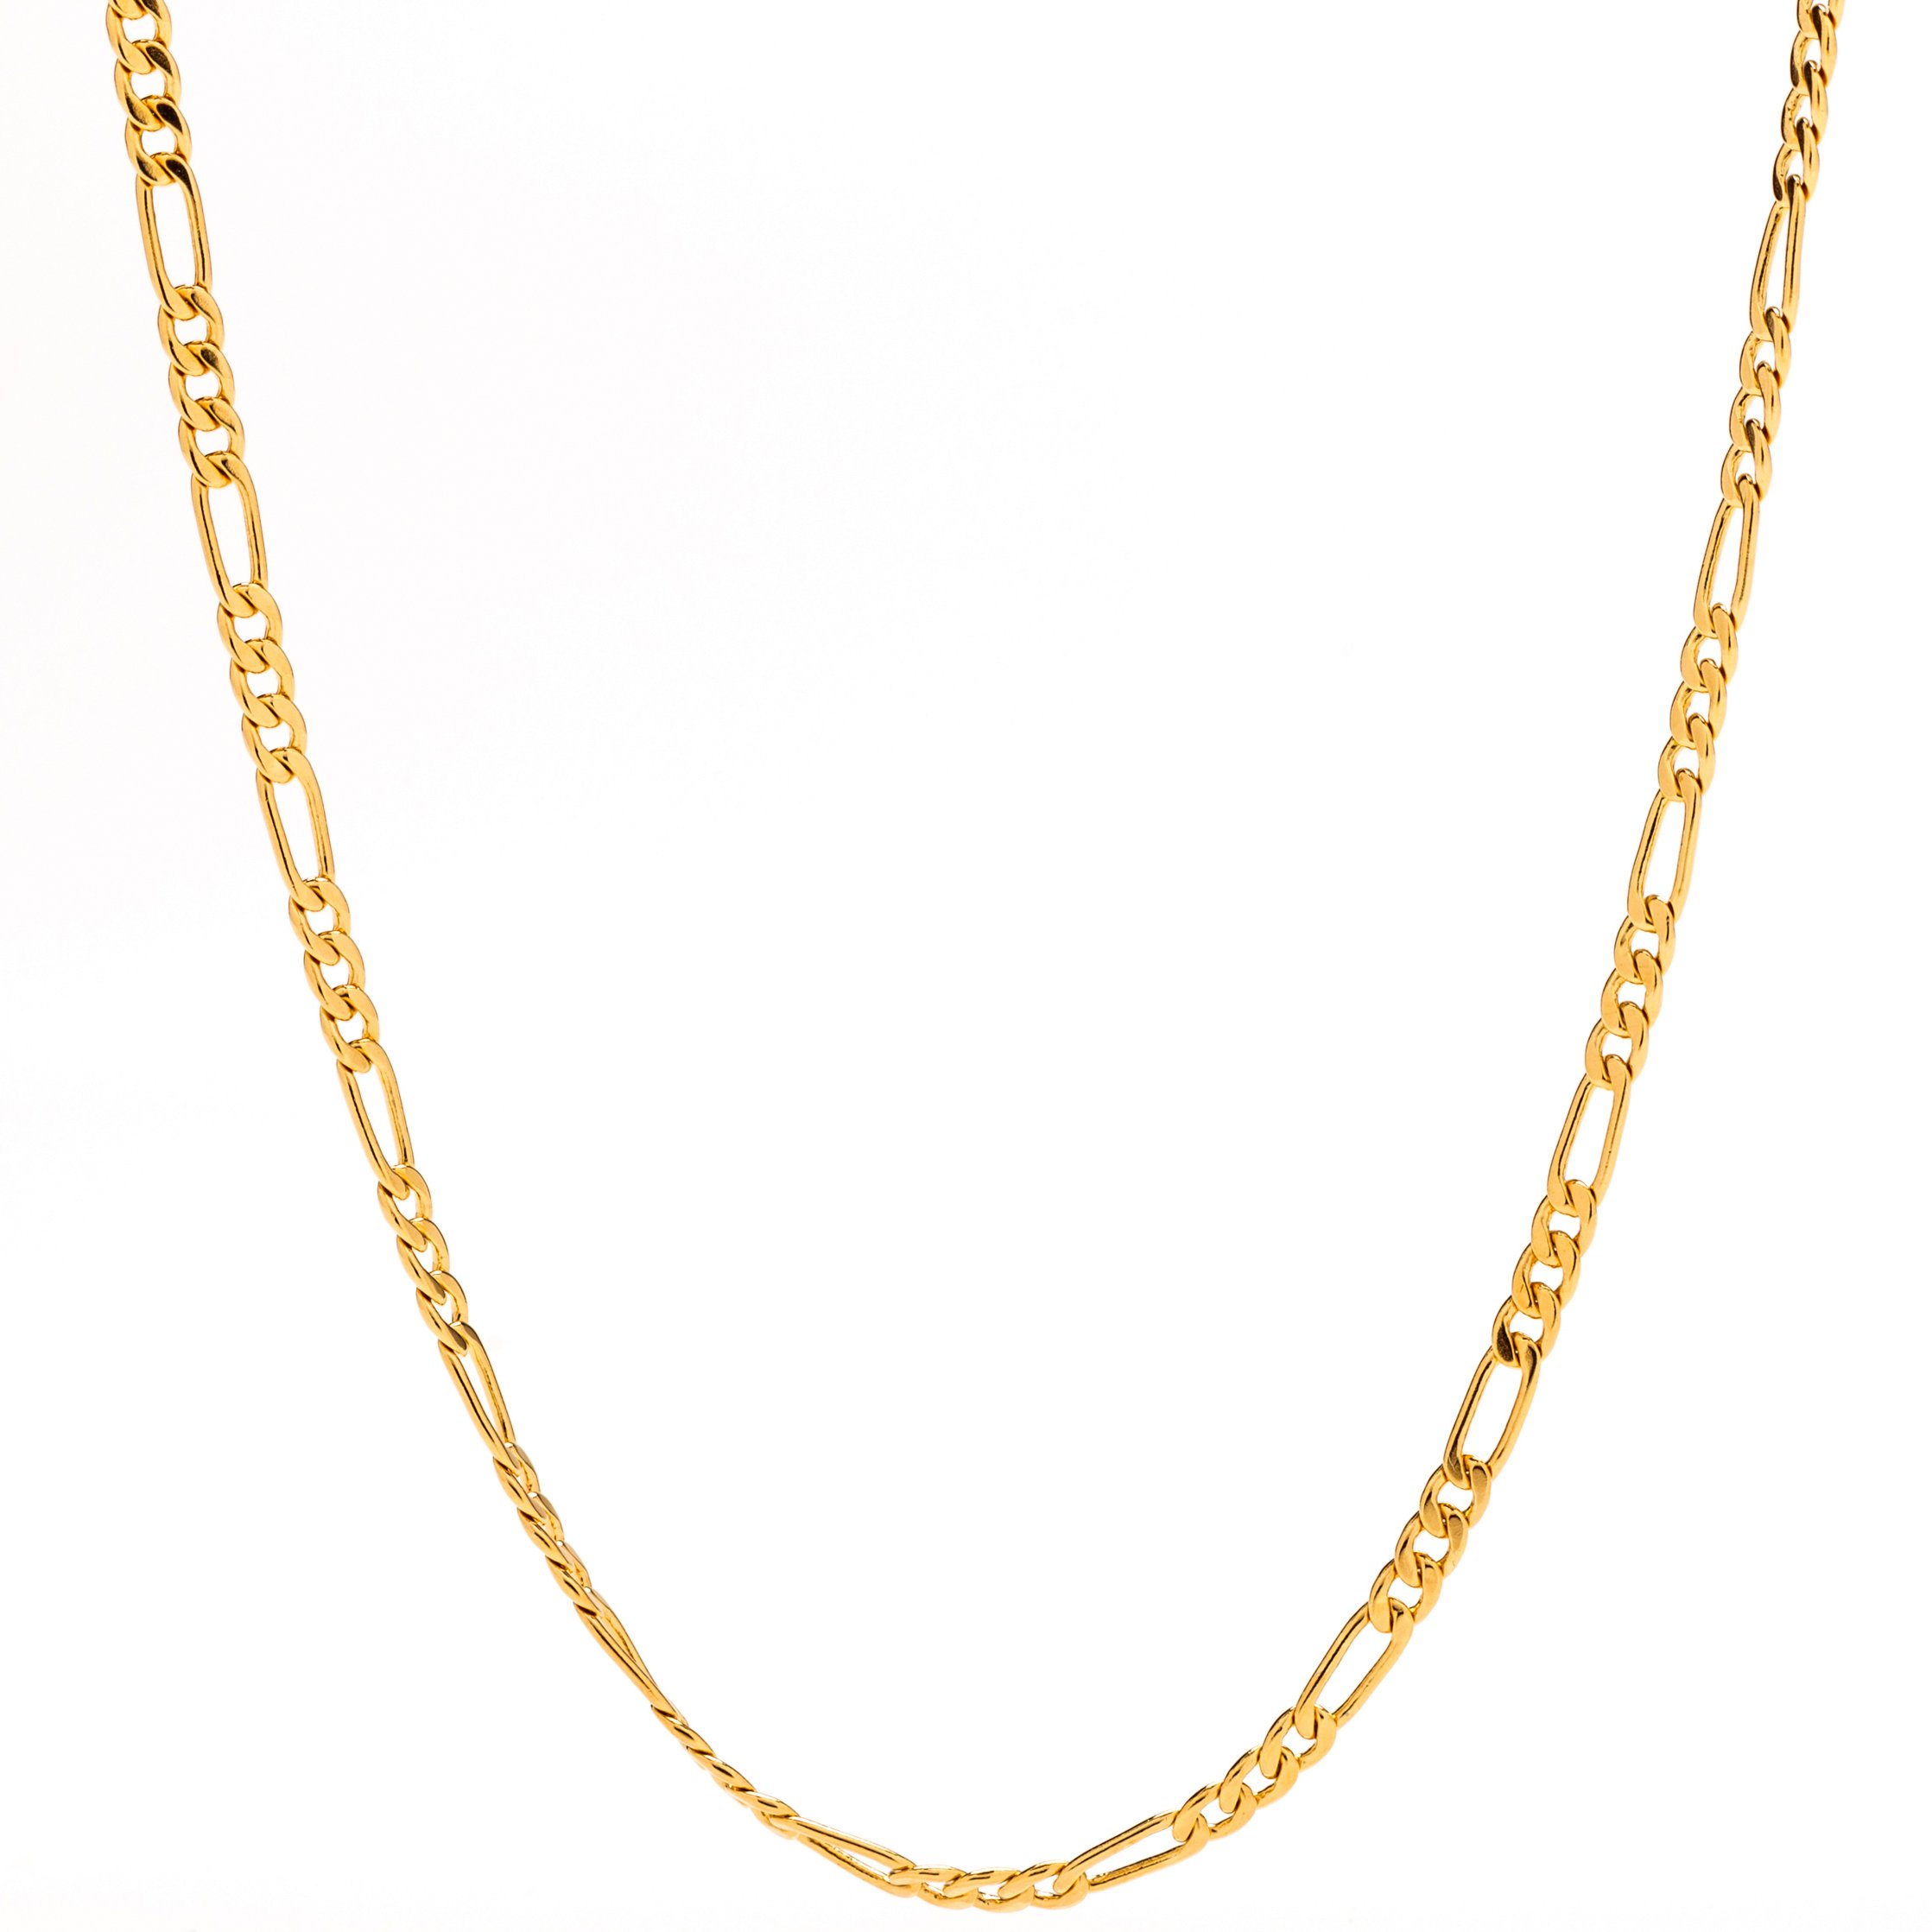 Lifetime Jewelry Figaro Chain 2.5MM, 24K Gold with Inlaid Bronze, Pendant Necklace, Guaranteed for Life, 16 to 30 Inches (30)